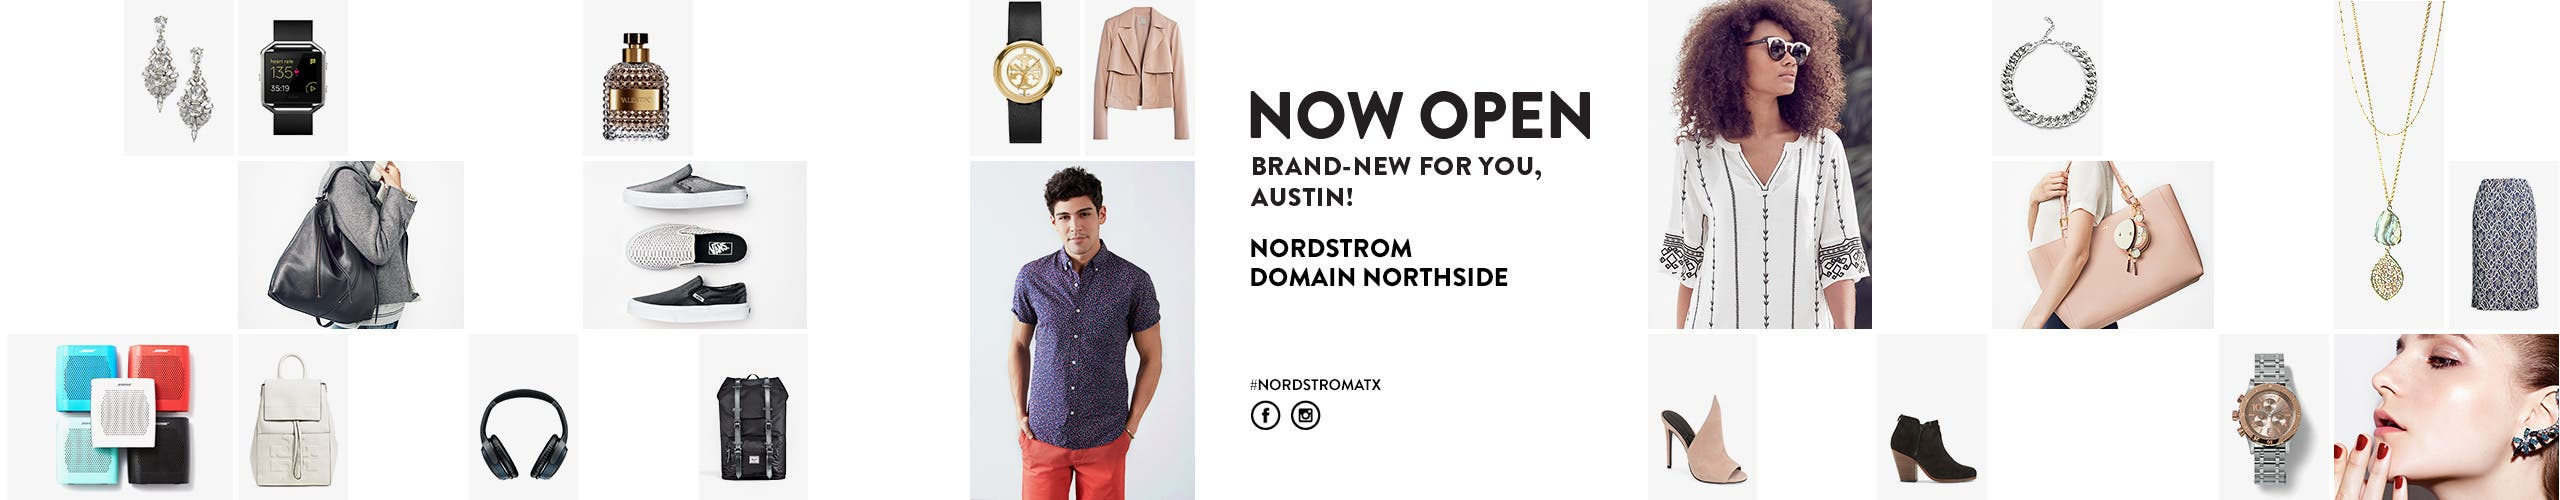 Brand-new for you, Austin: Nordstrom Domain Northside is now open.